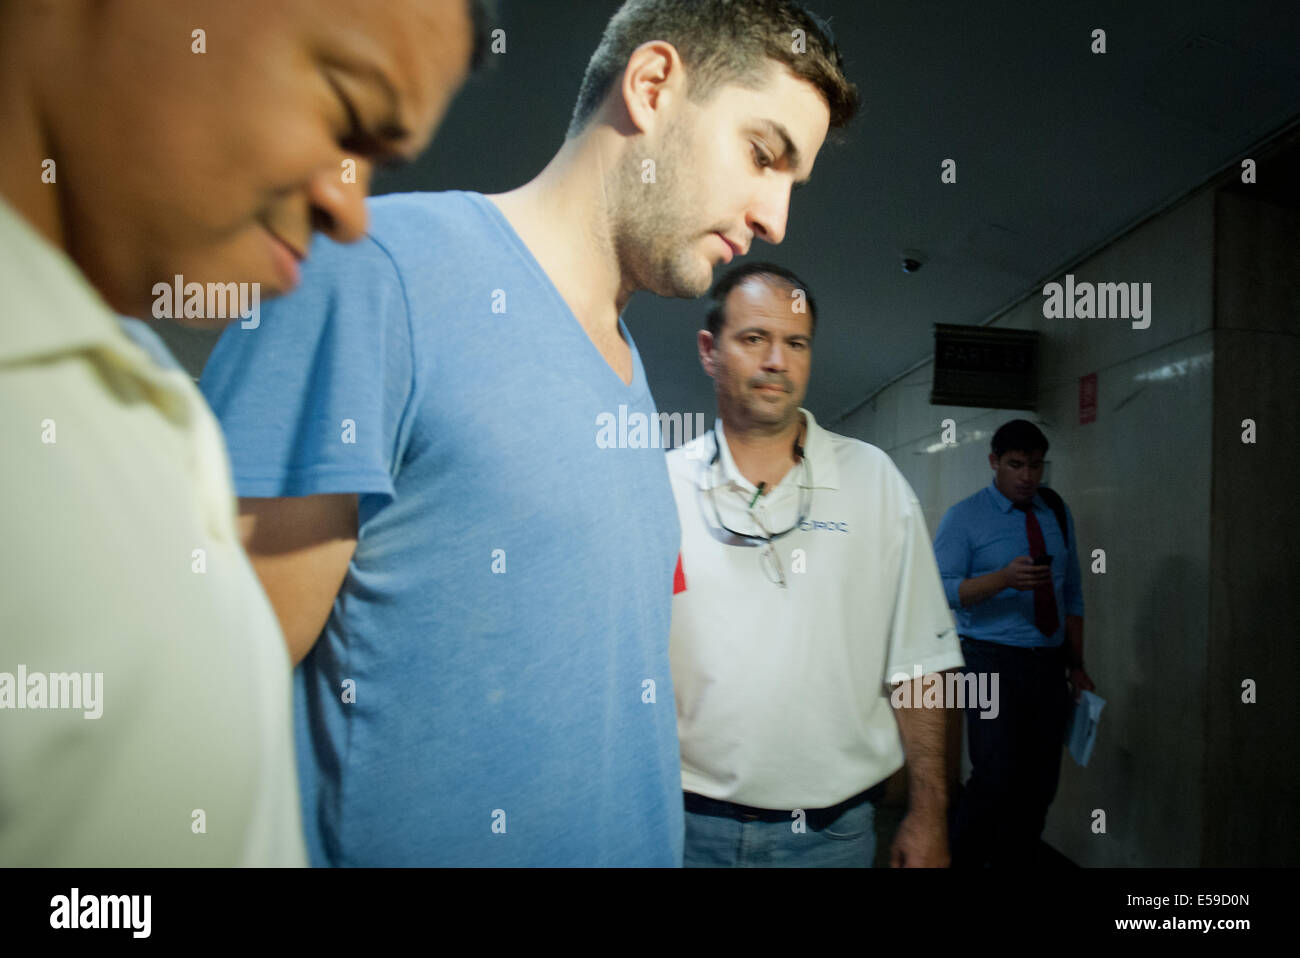 Manhattan, New York, USA. 23rd July, 2014. DANIEL PETRYSZYN arrives for arraignment on charges as Manhattan District - Stock Image